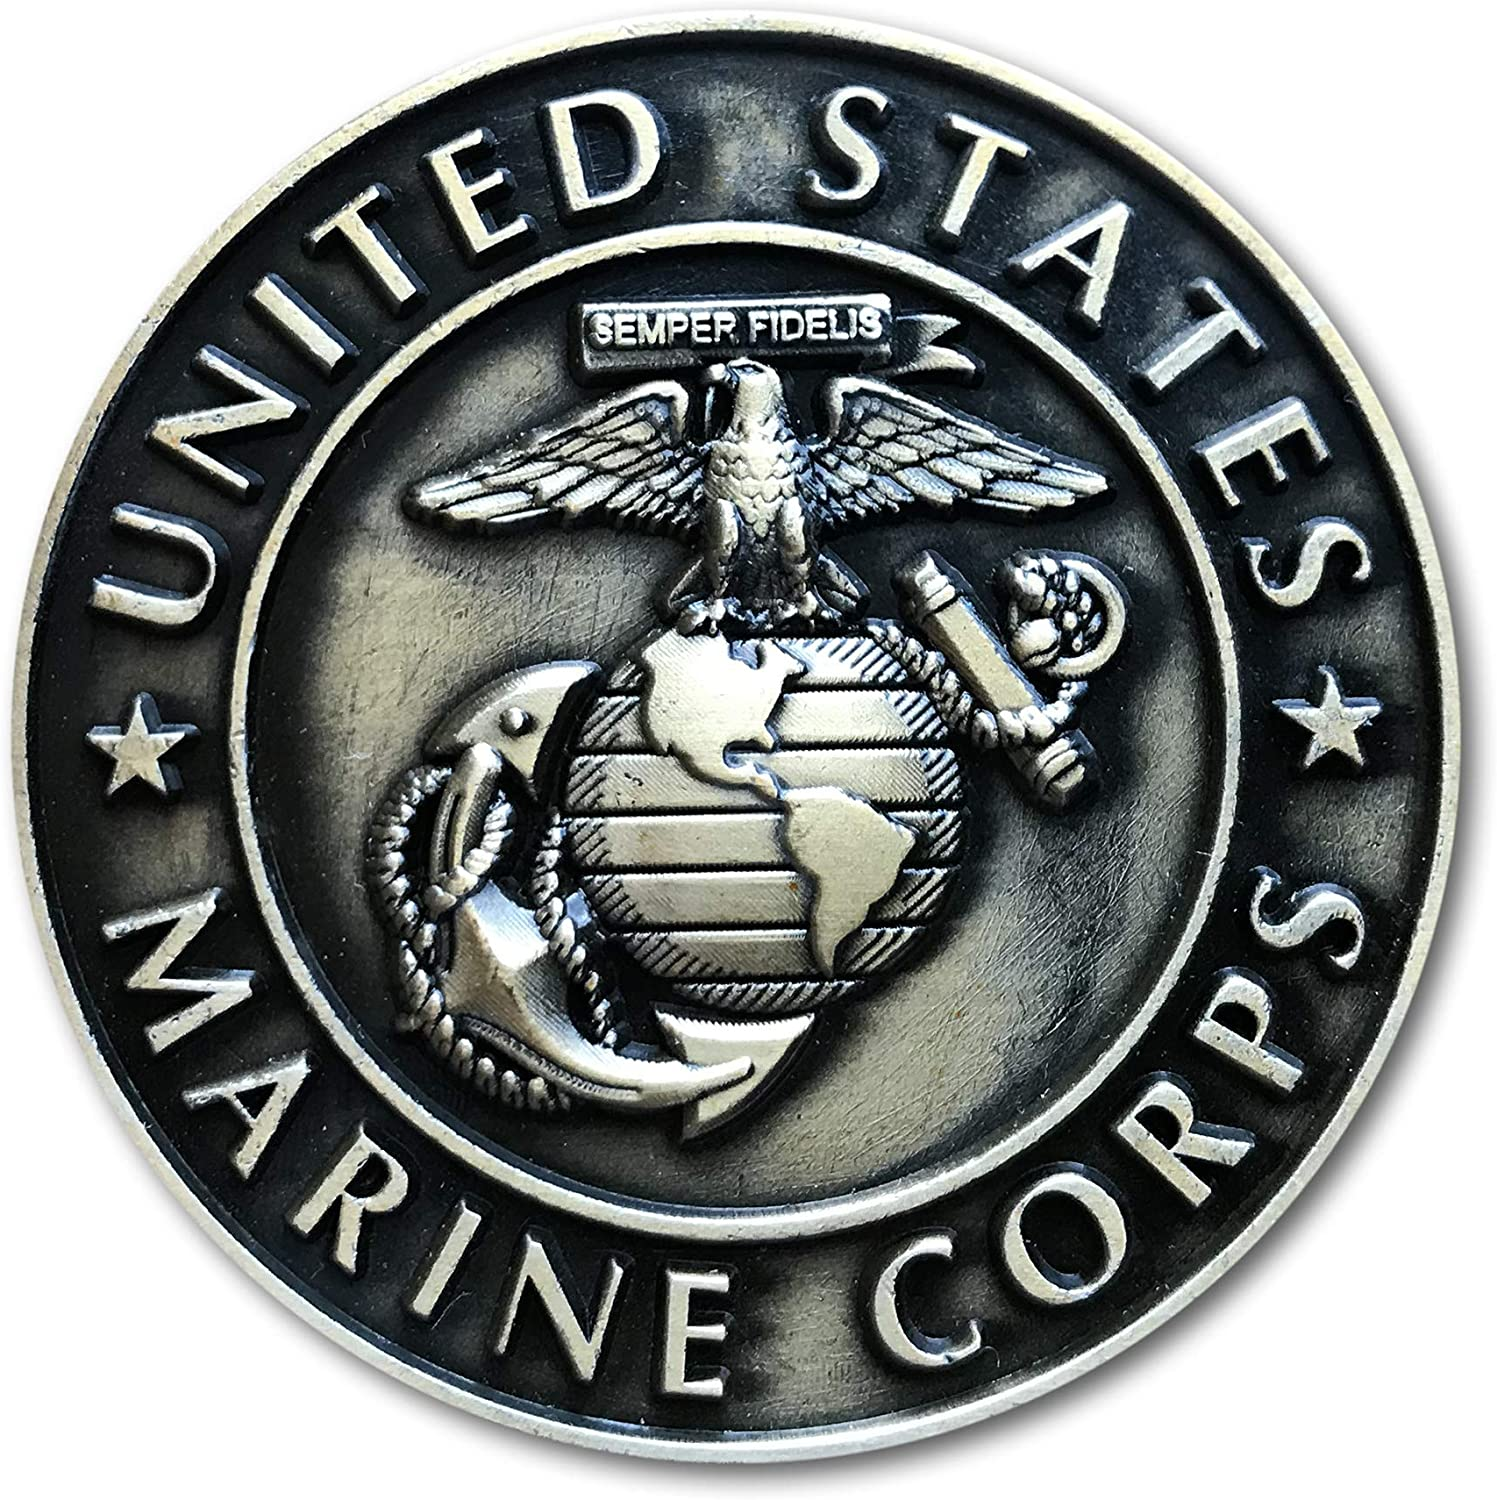 MARINE CORPS USMC MILITARY POLICE BADGE MAGNET PACKAGE SET OF 4